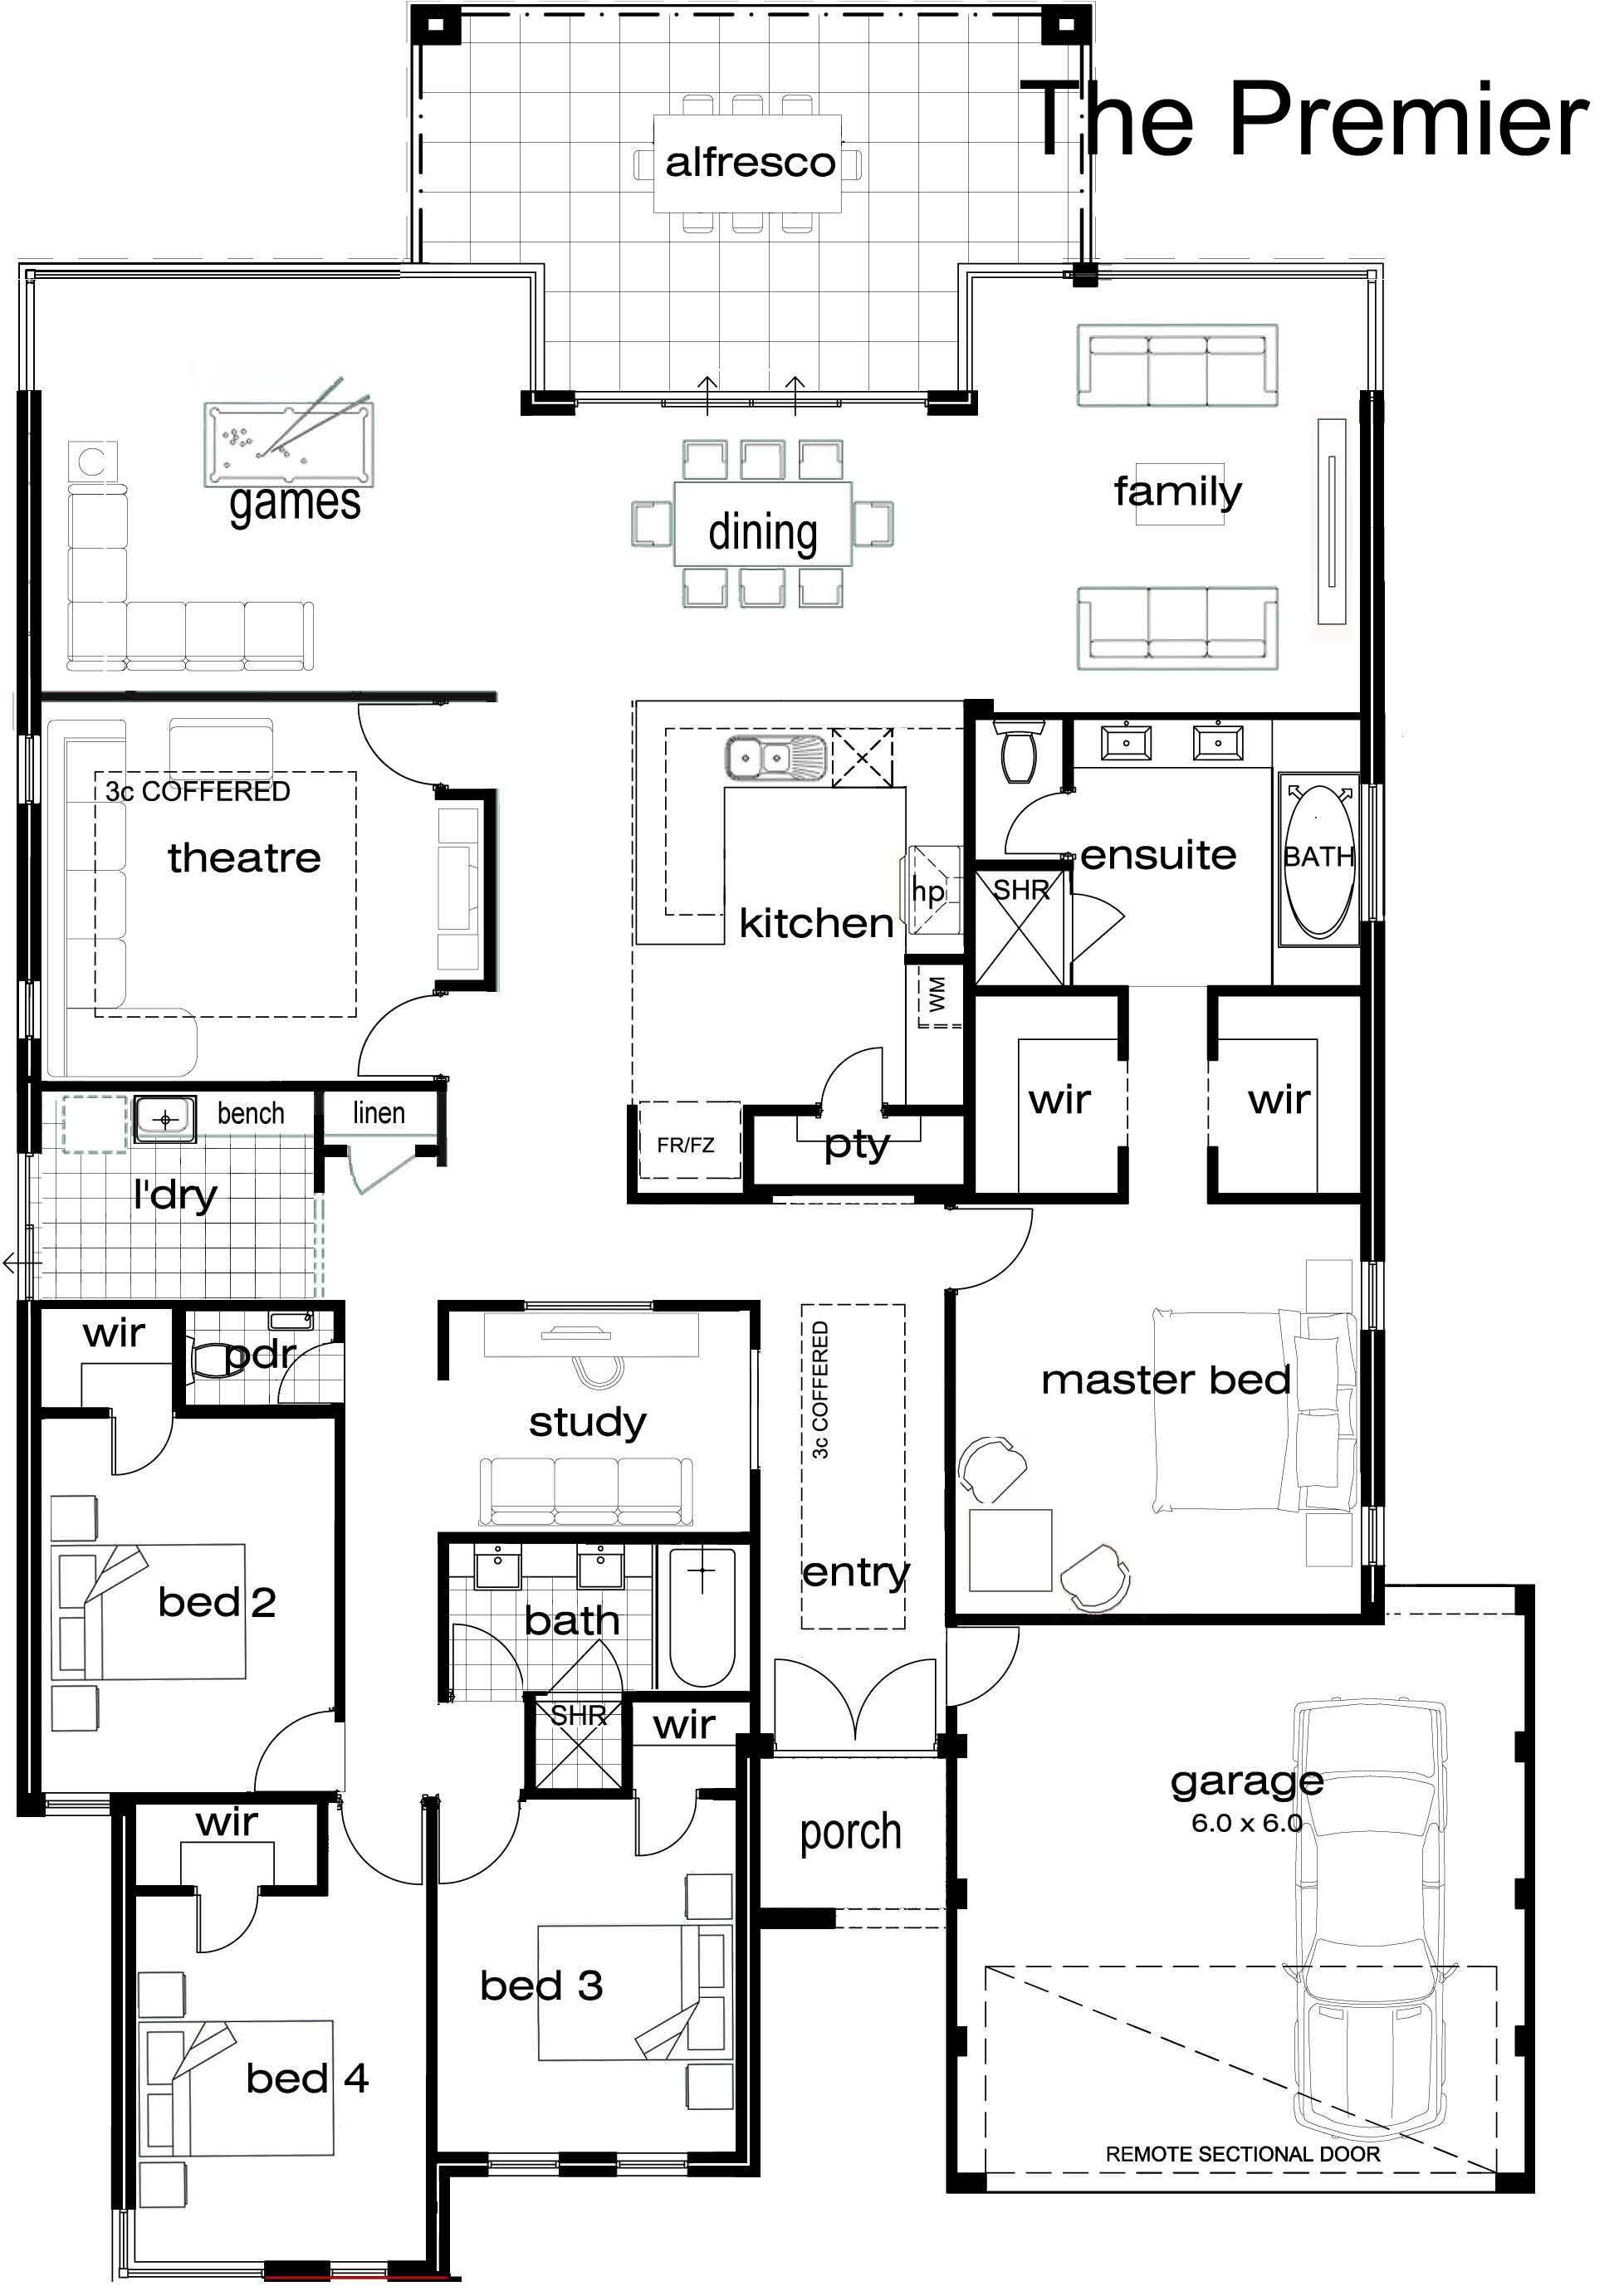 Single Story Luxury House Plans Single Story House Floor Plans New House Plans Basement House Plans